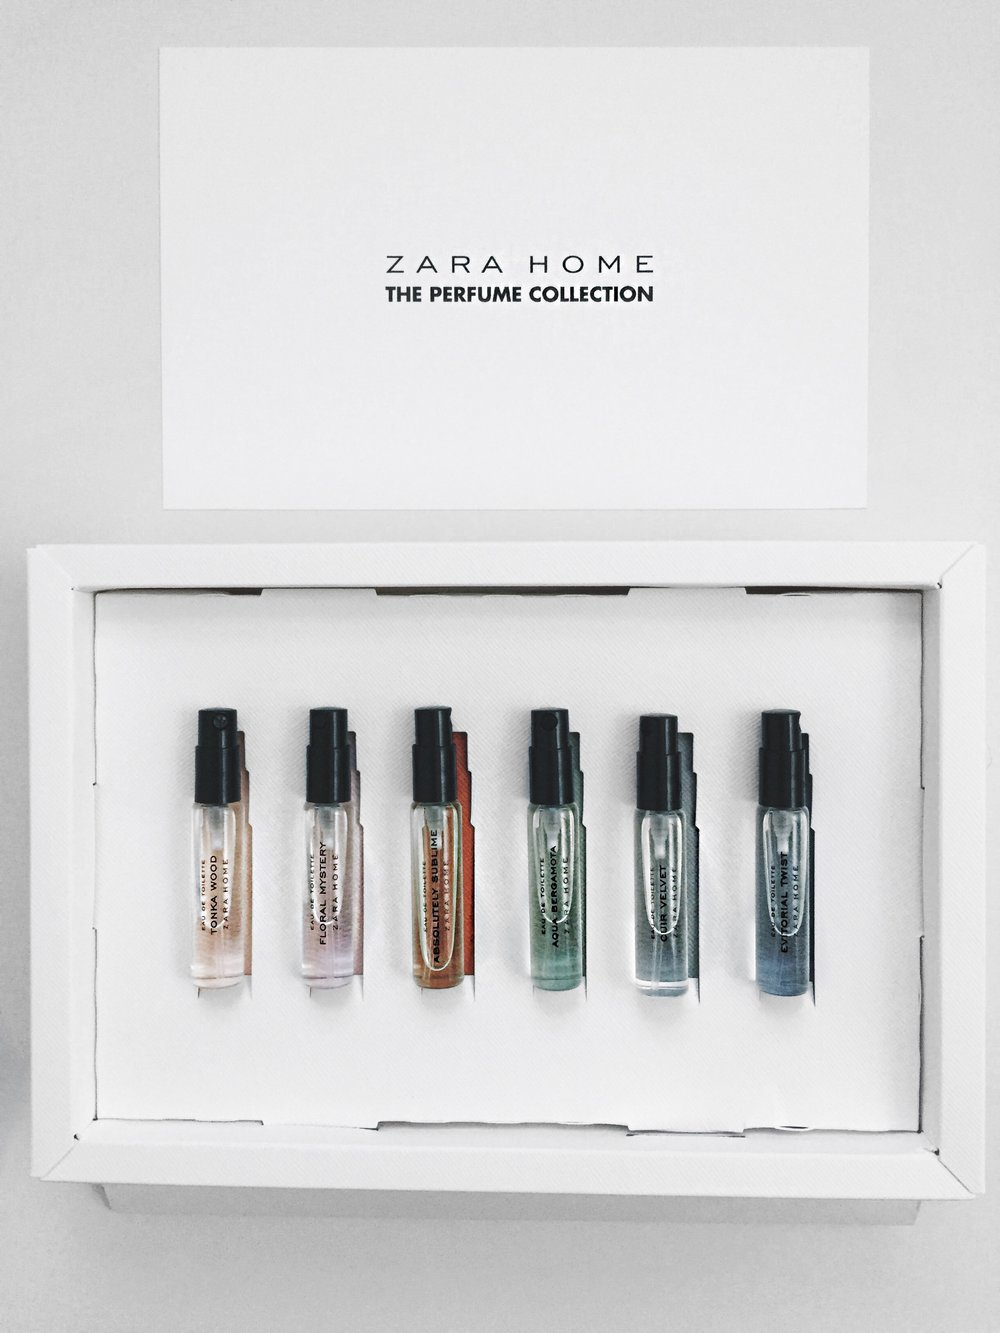 Zara Home The Perfume Collection Mr Luke Christian Uk Based